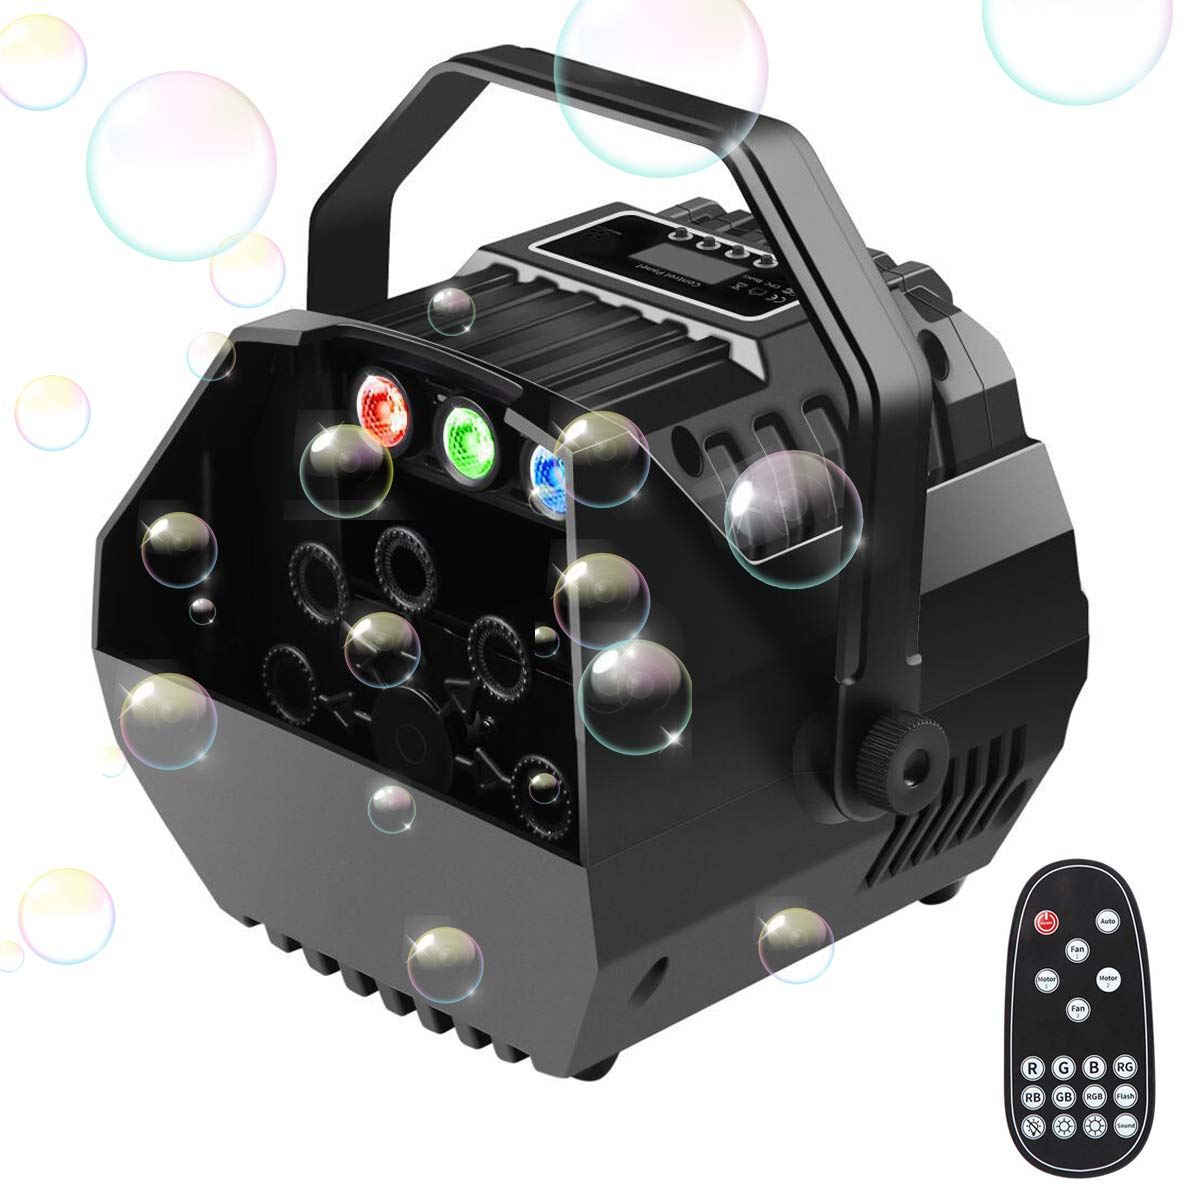 Yugee 2019 New Bubble Machine Automatic Bubble Powered by Plug-in or Batteries Outdoor/Indoor Use